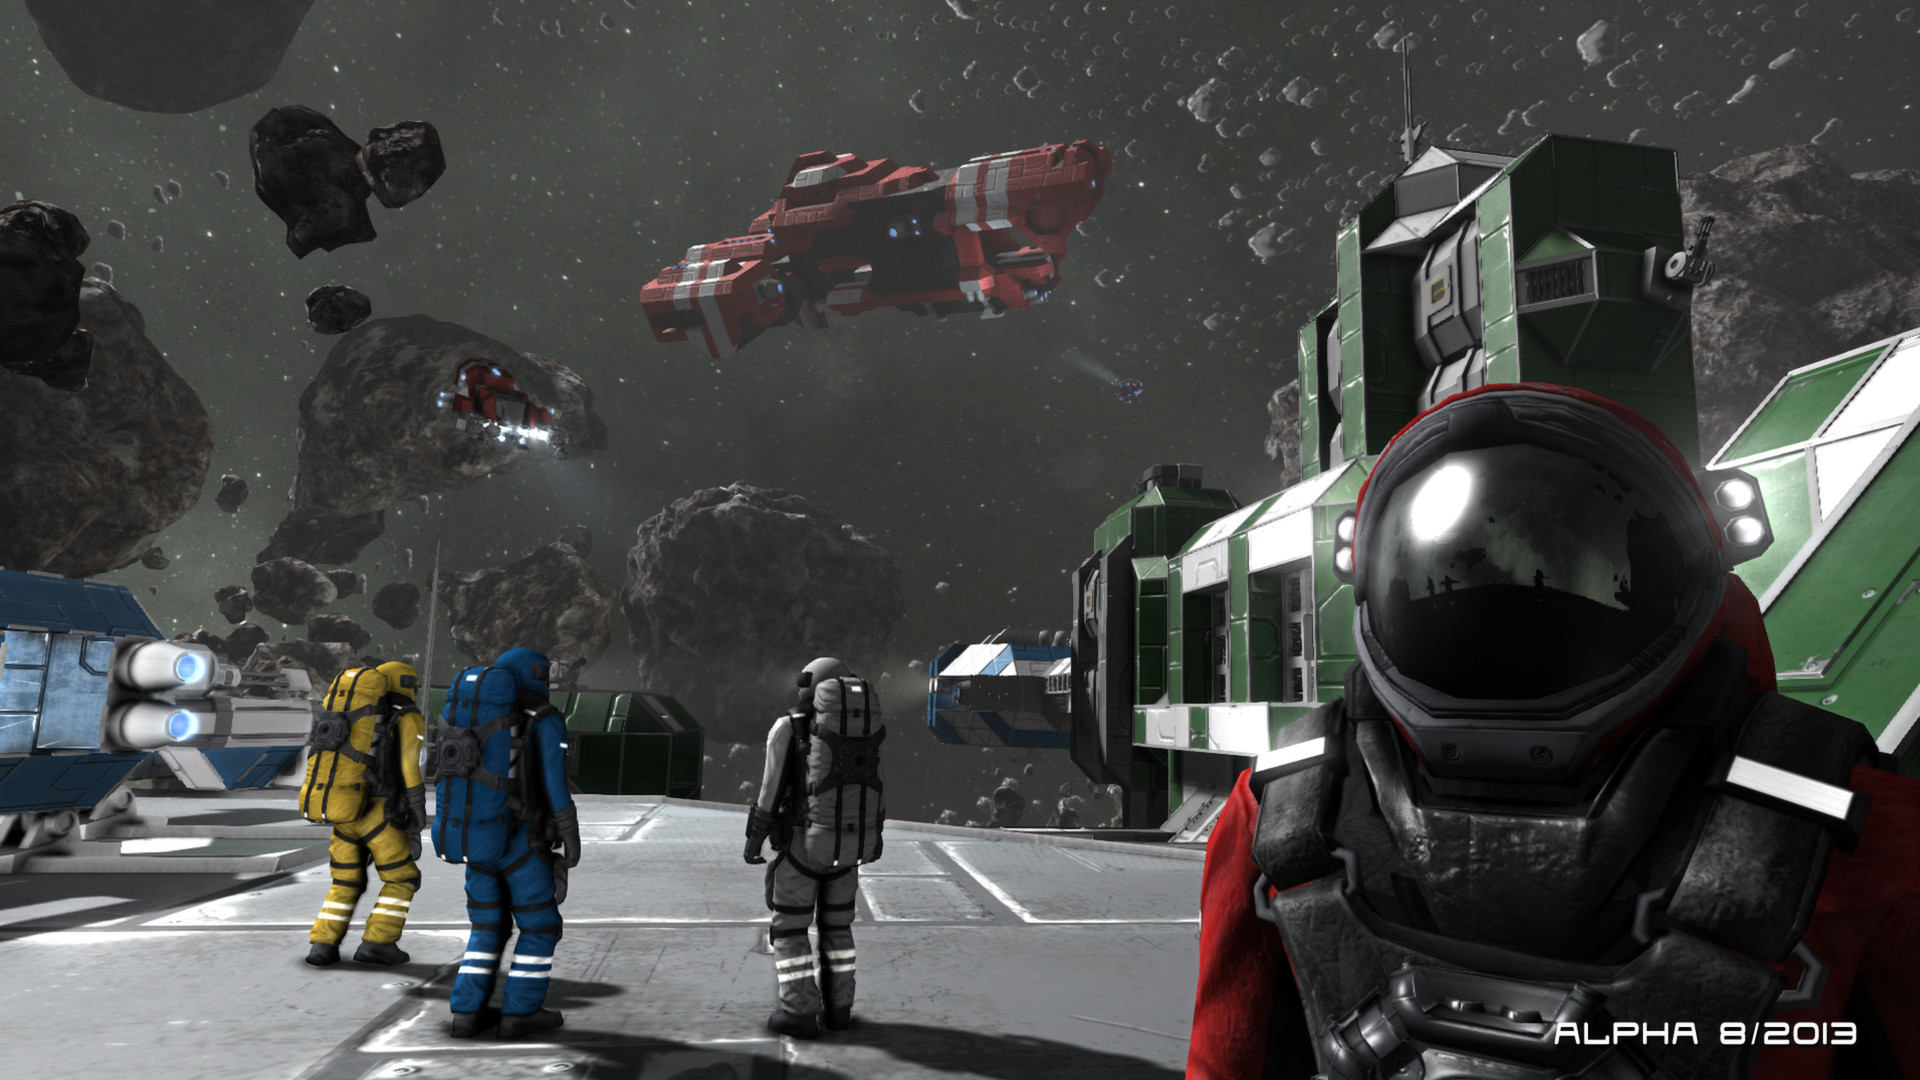 44 Best Space games on Steam as of 2019 - Slant